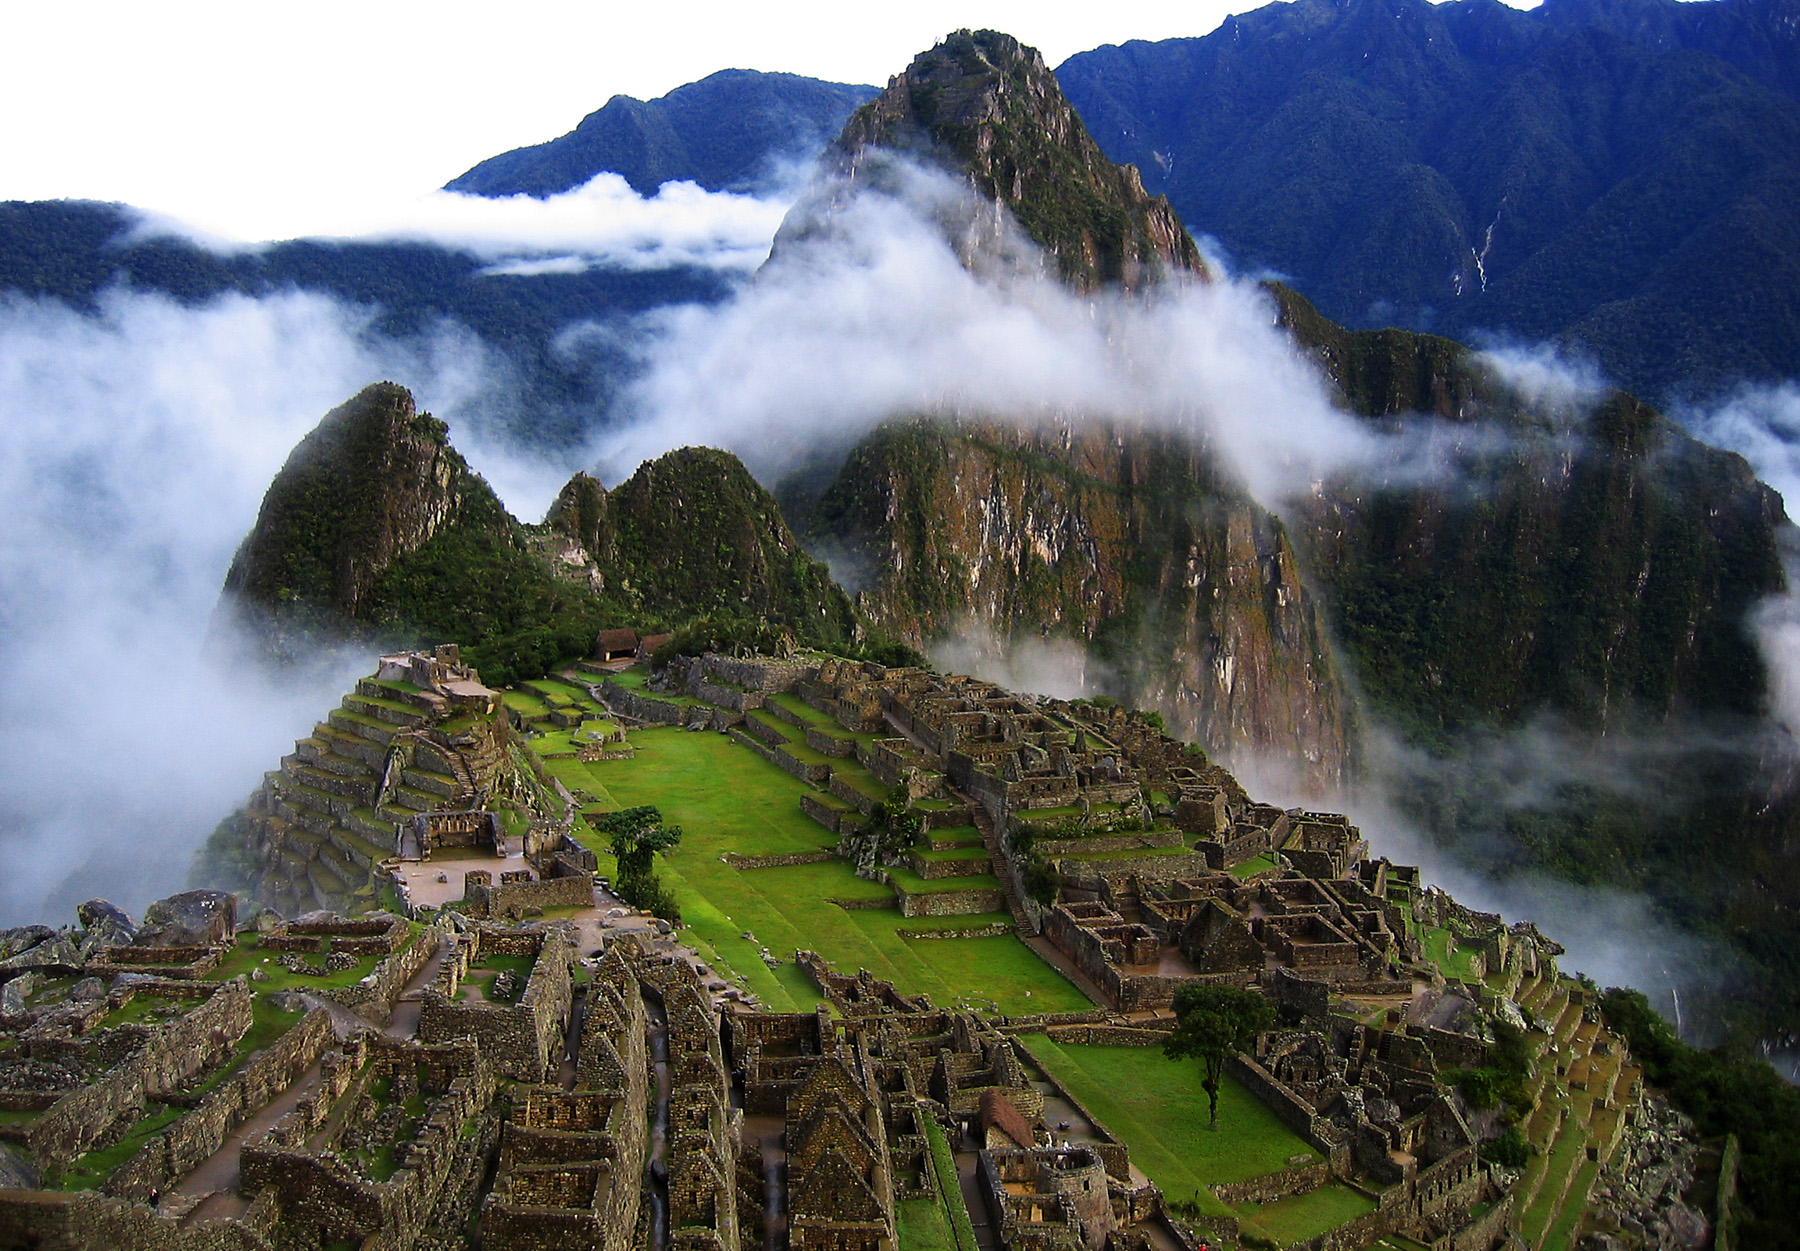 Join me on a Spiritual Pilgrimage to Machu Picchu Peru - Spaces are limited, includes sacred ceremonies with Indigenous Shamans, and pilgrimage to Machu Picchu